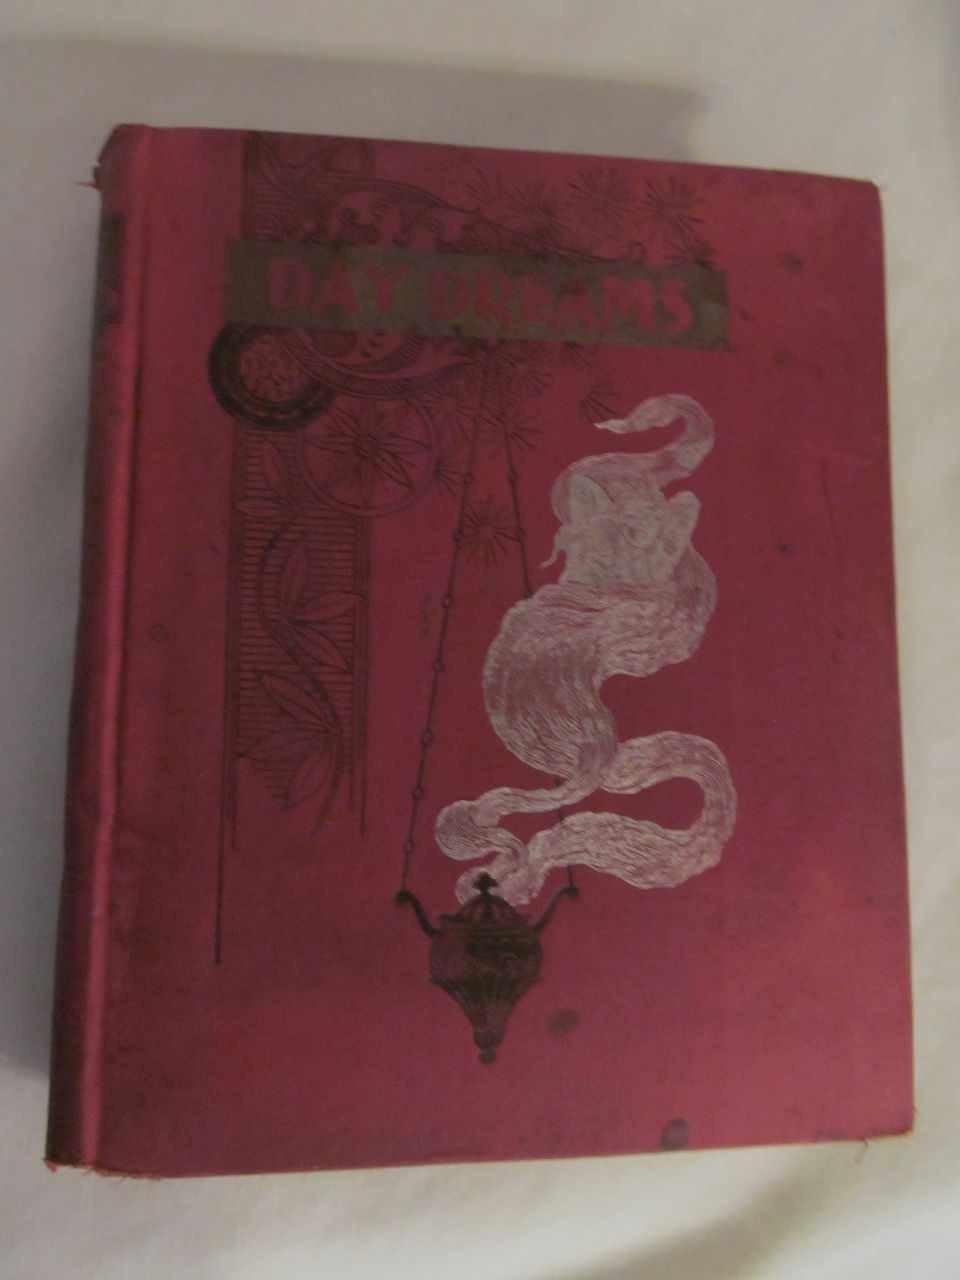 1892 Day Dreams,Poems From Favorite Poets, National Book Mart Publisher